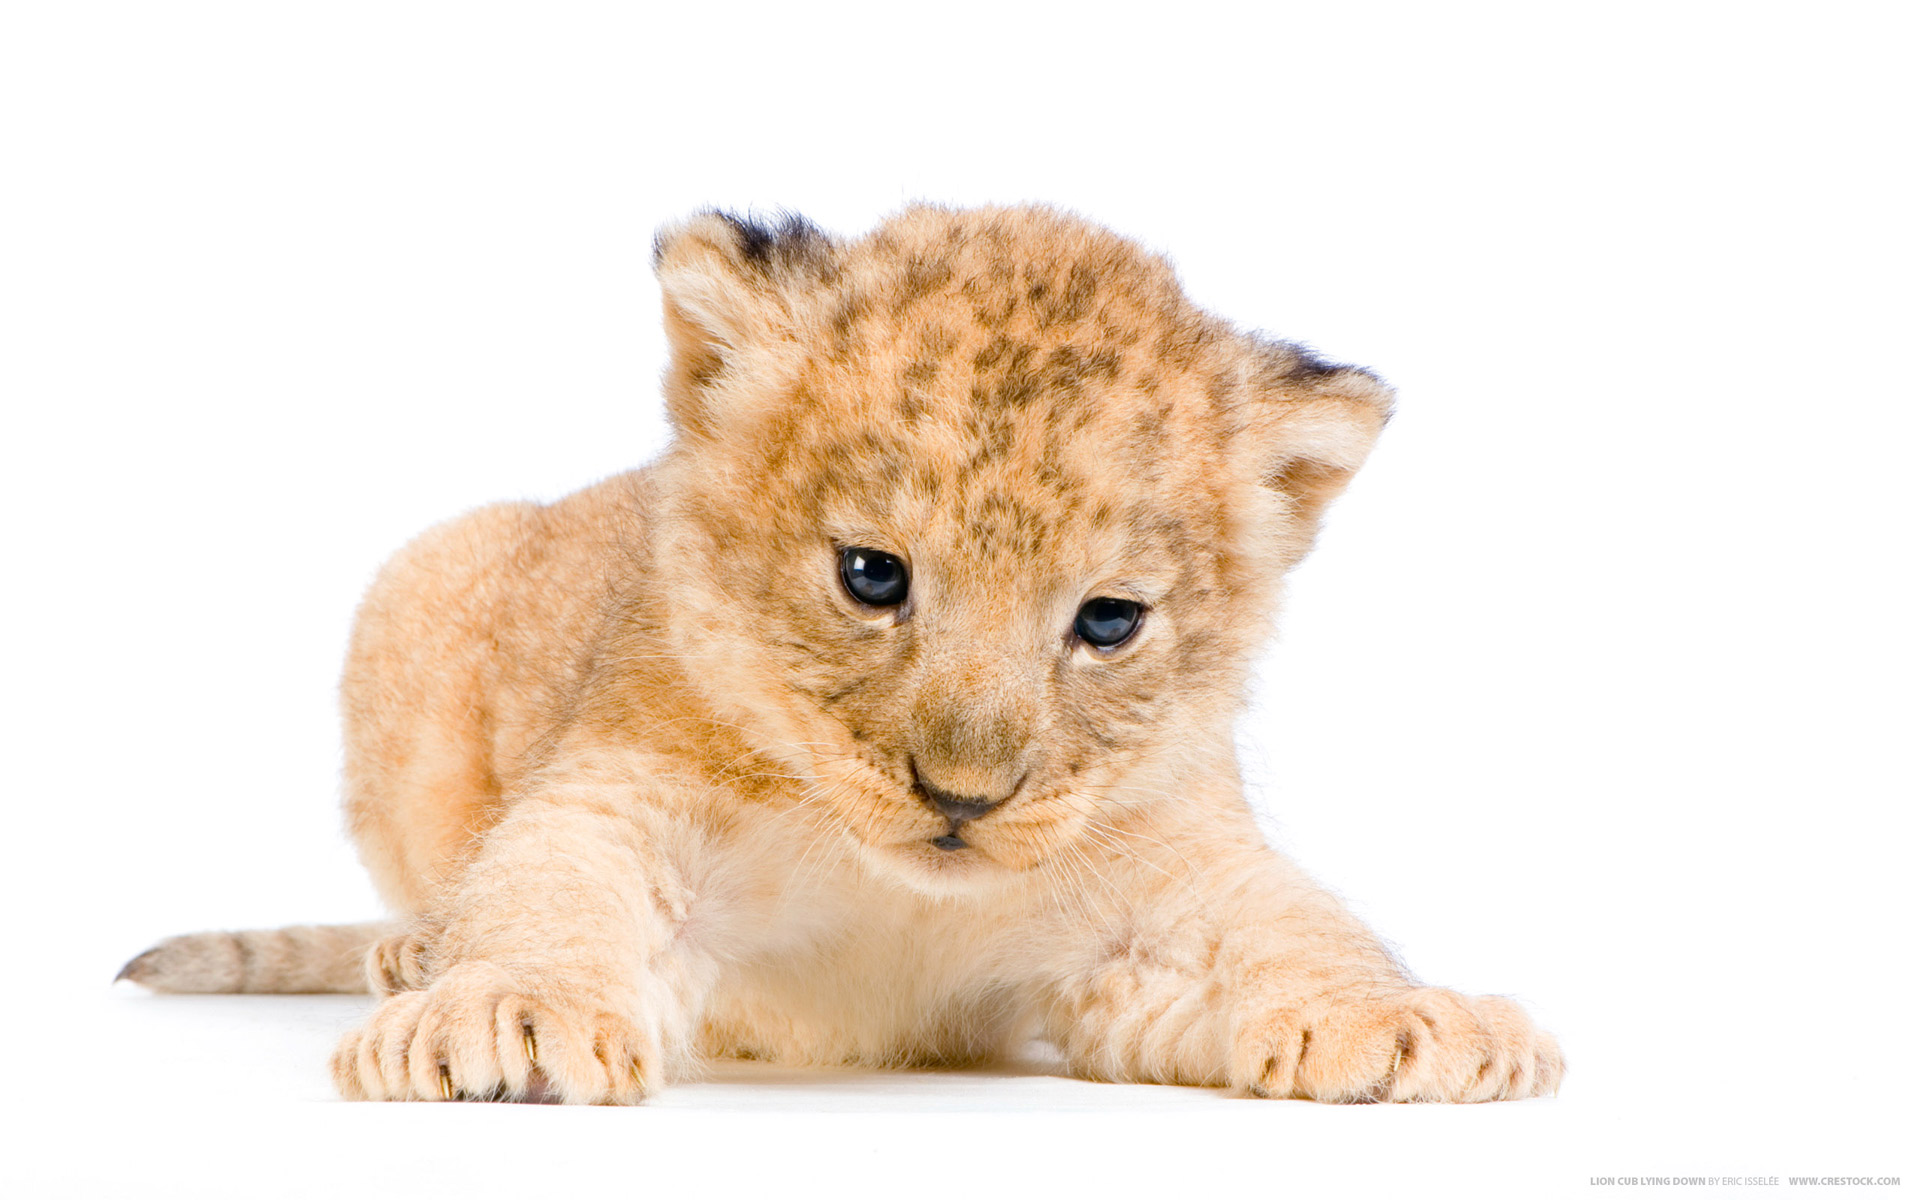 View And Download Lion Cub Wallpapers